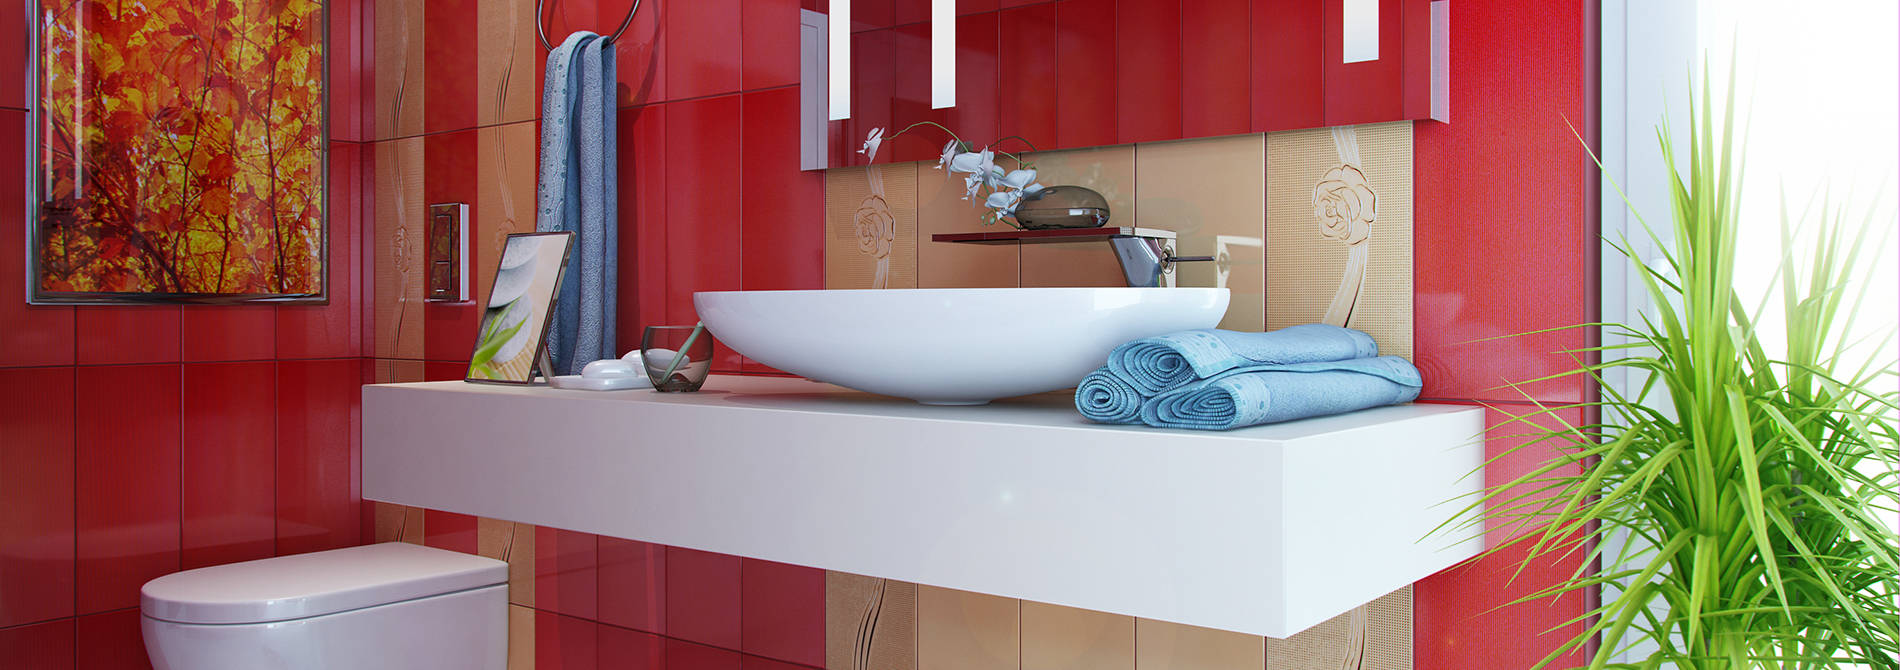 Element bathroom red AMBIENT